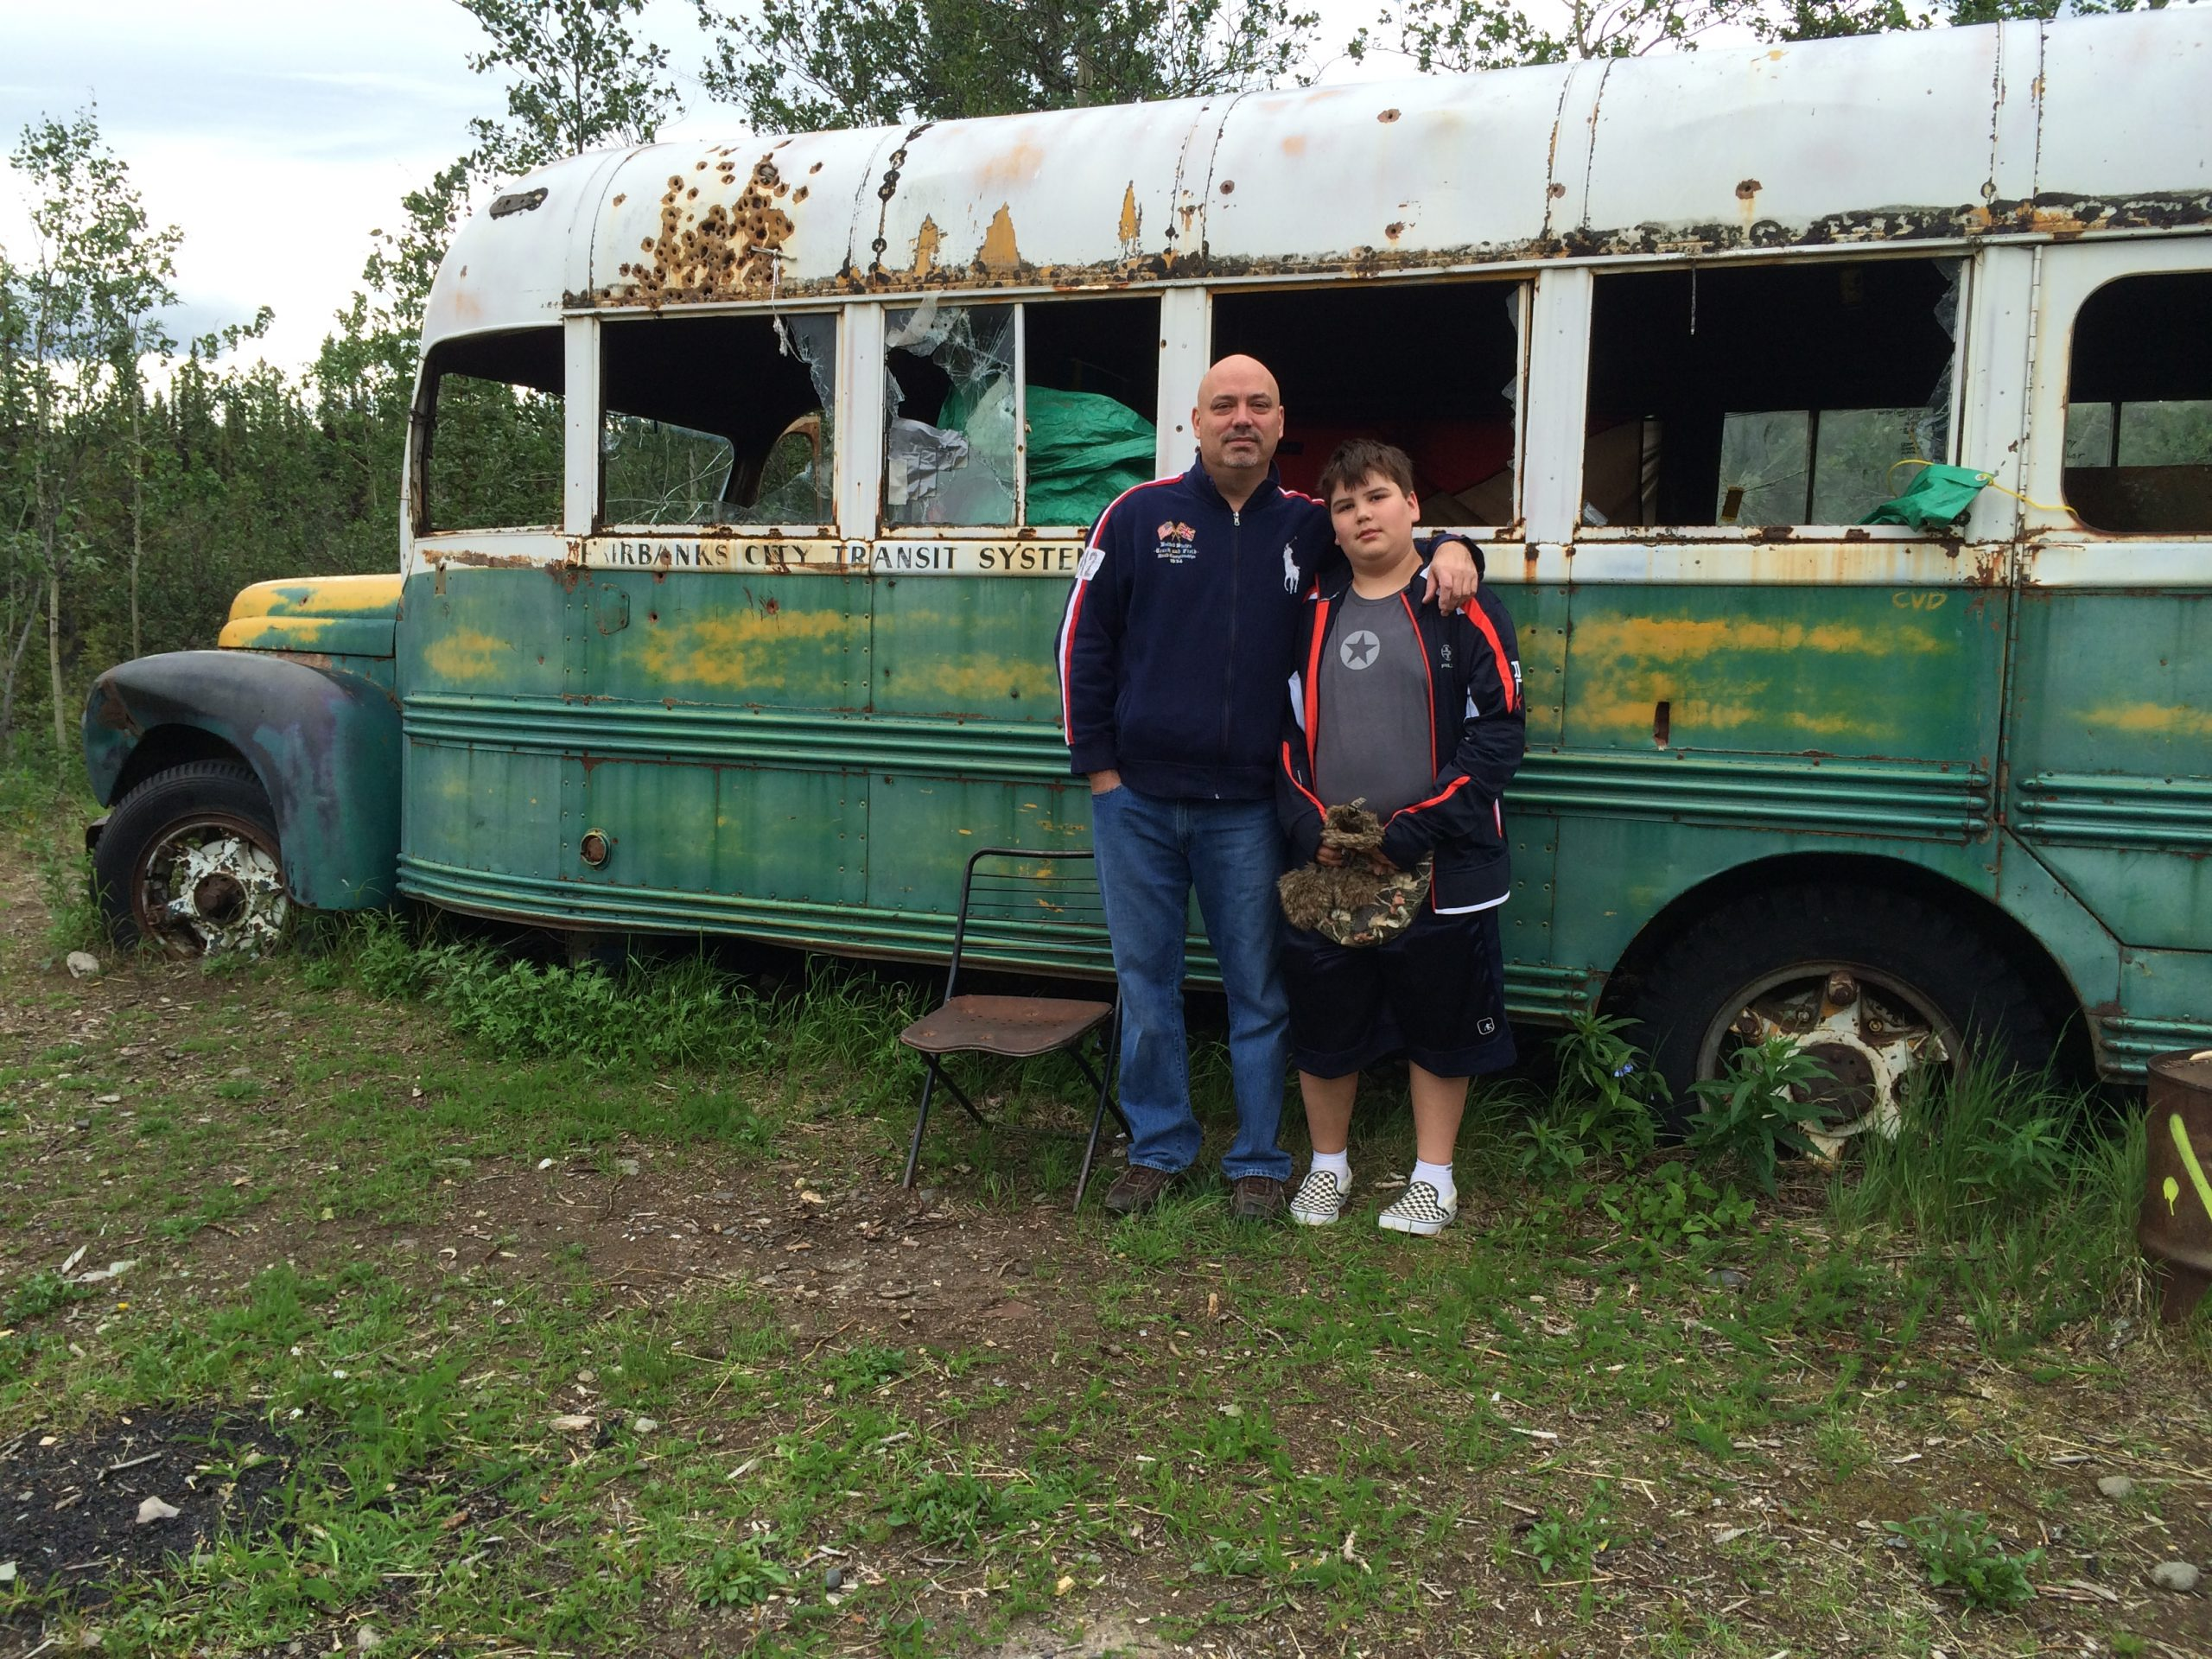 Samuel Patterson & Nathan Pattersonat Bus 142  on July 10 2014